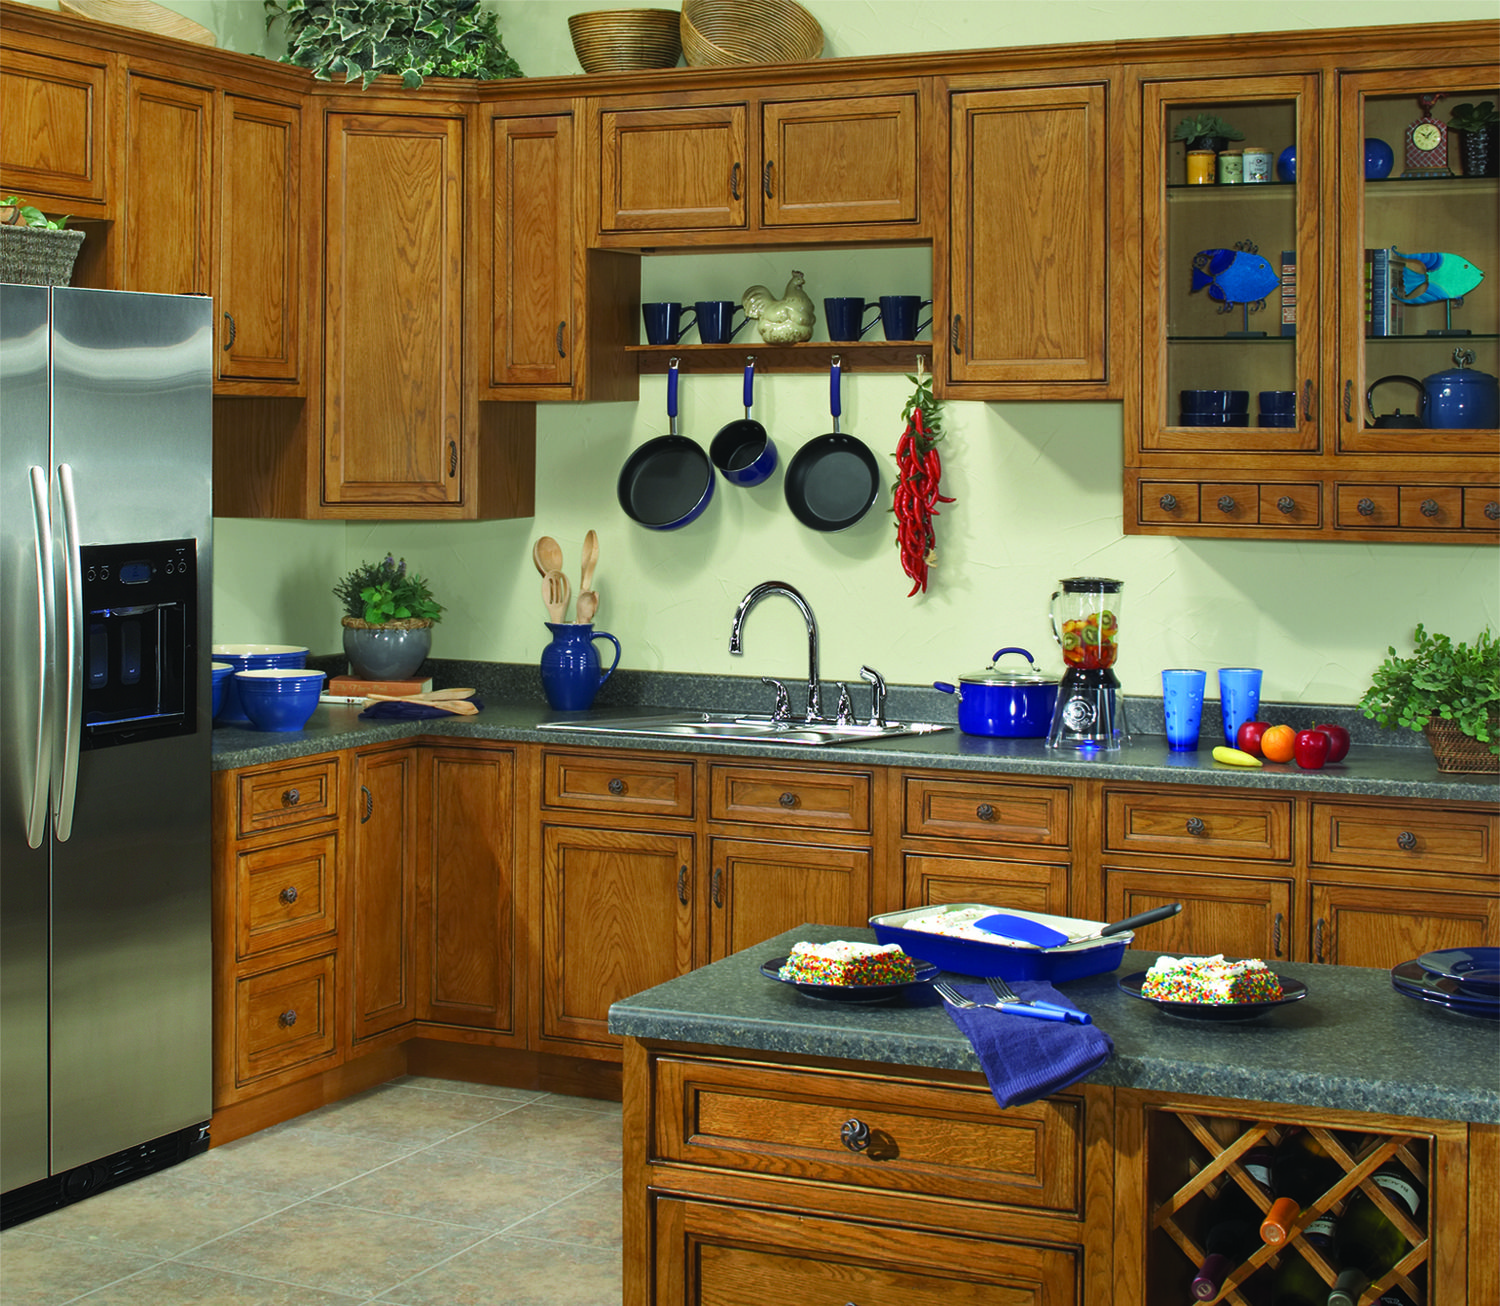 The Carmel Kitchen Collection From Sunny Wood Visit Us At Www Sunnywood Biz Kitchen Collection Kitchen Kitchen Cabinets